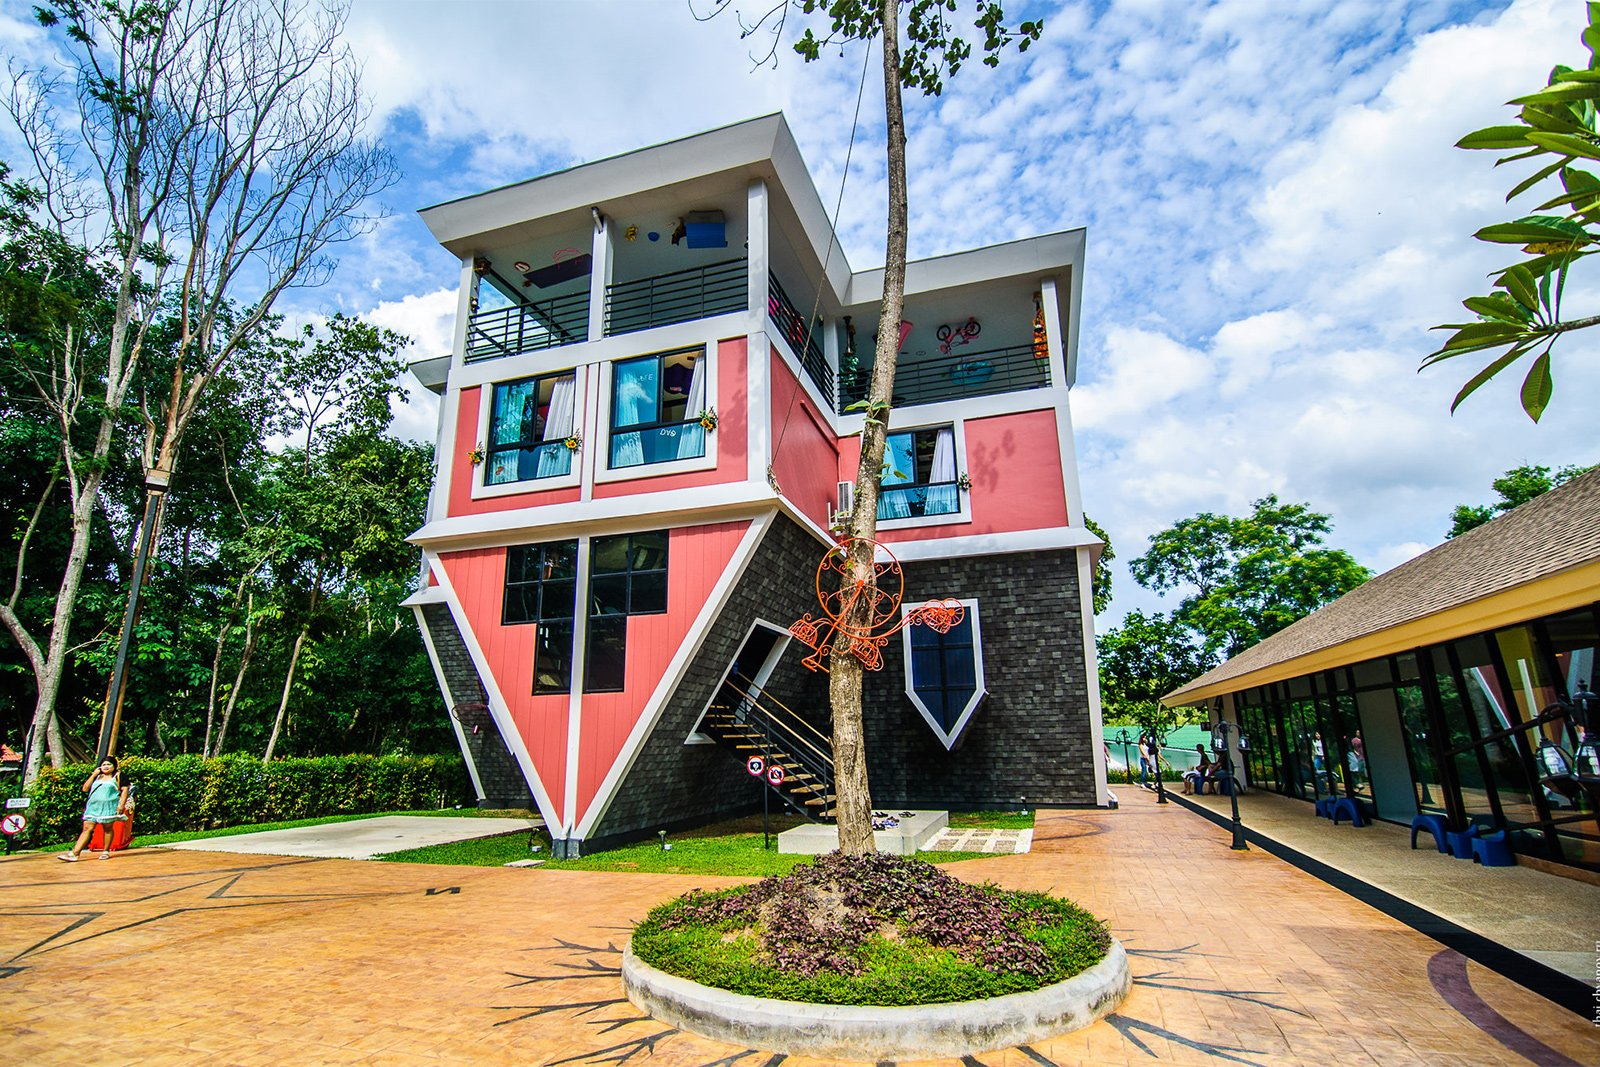 Upside down house, Phuket